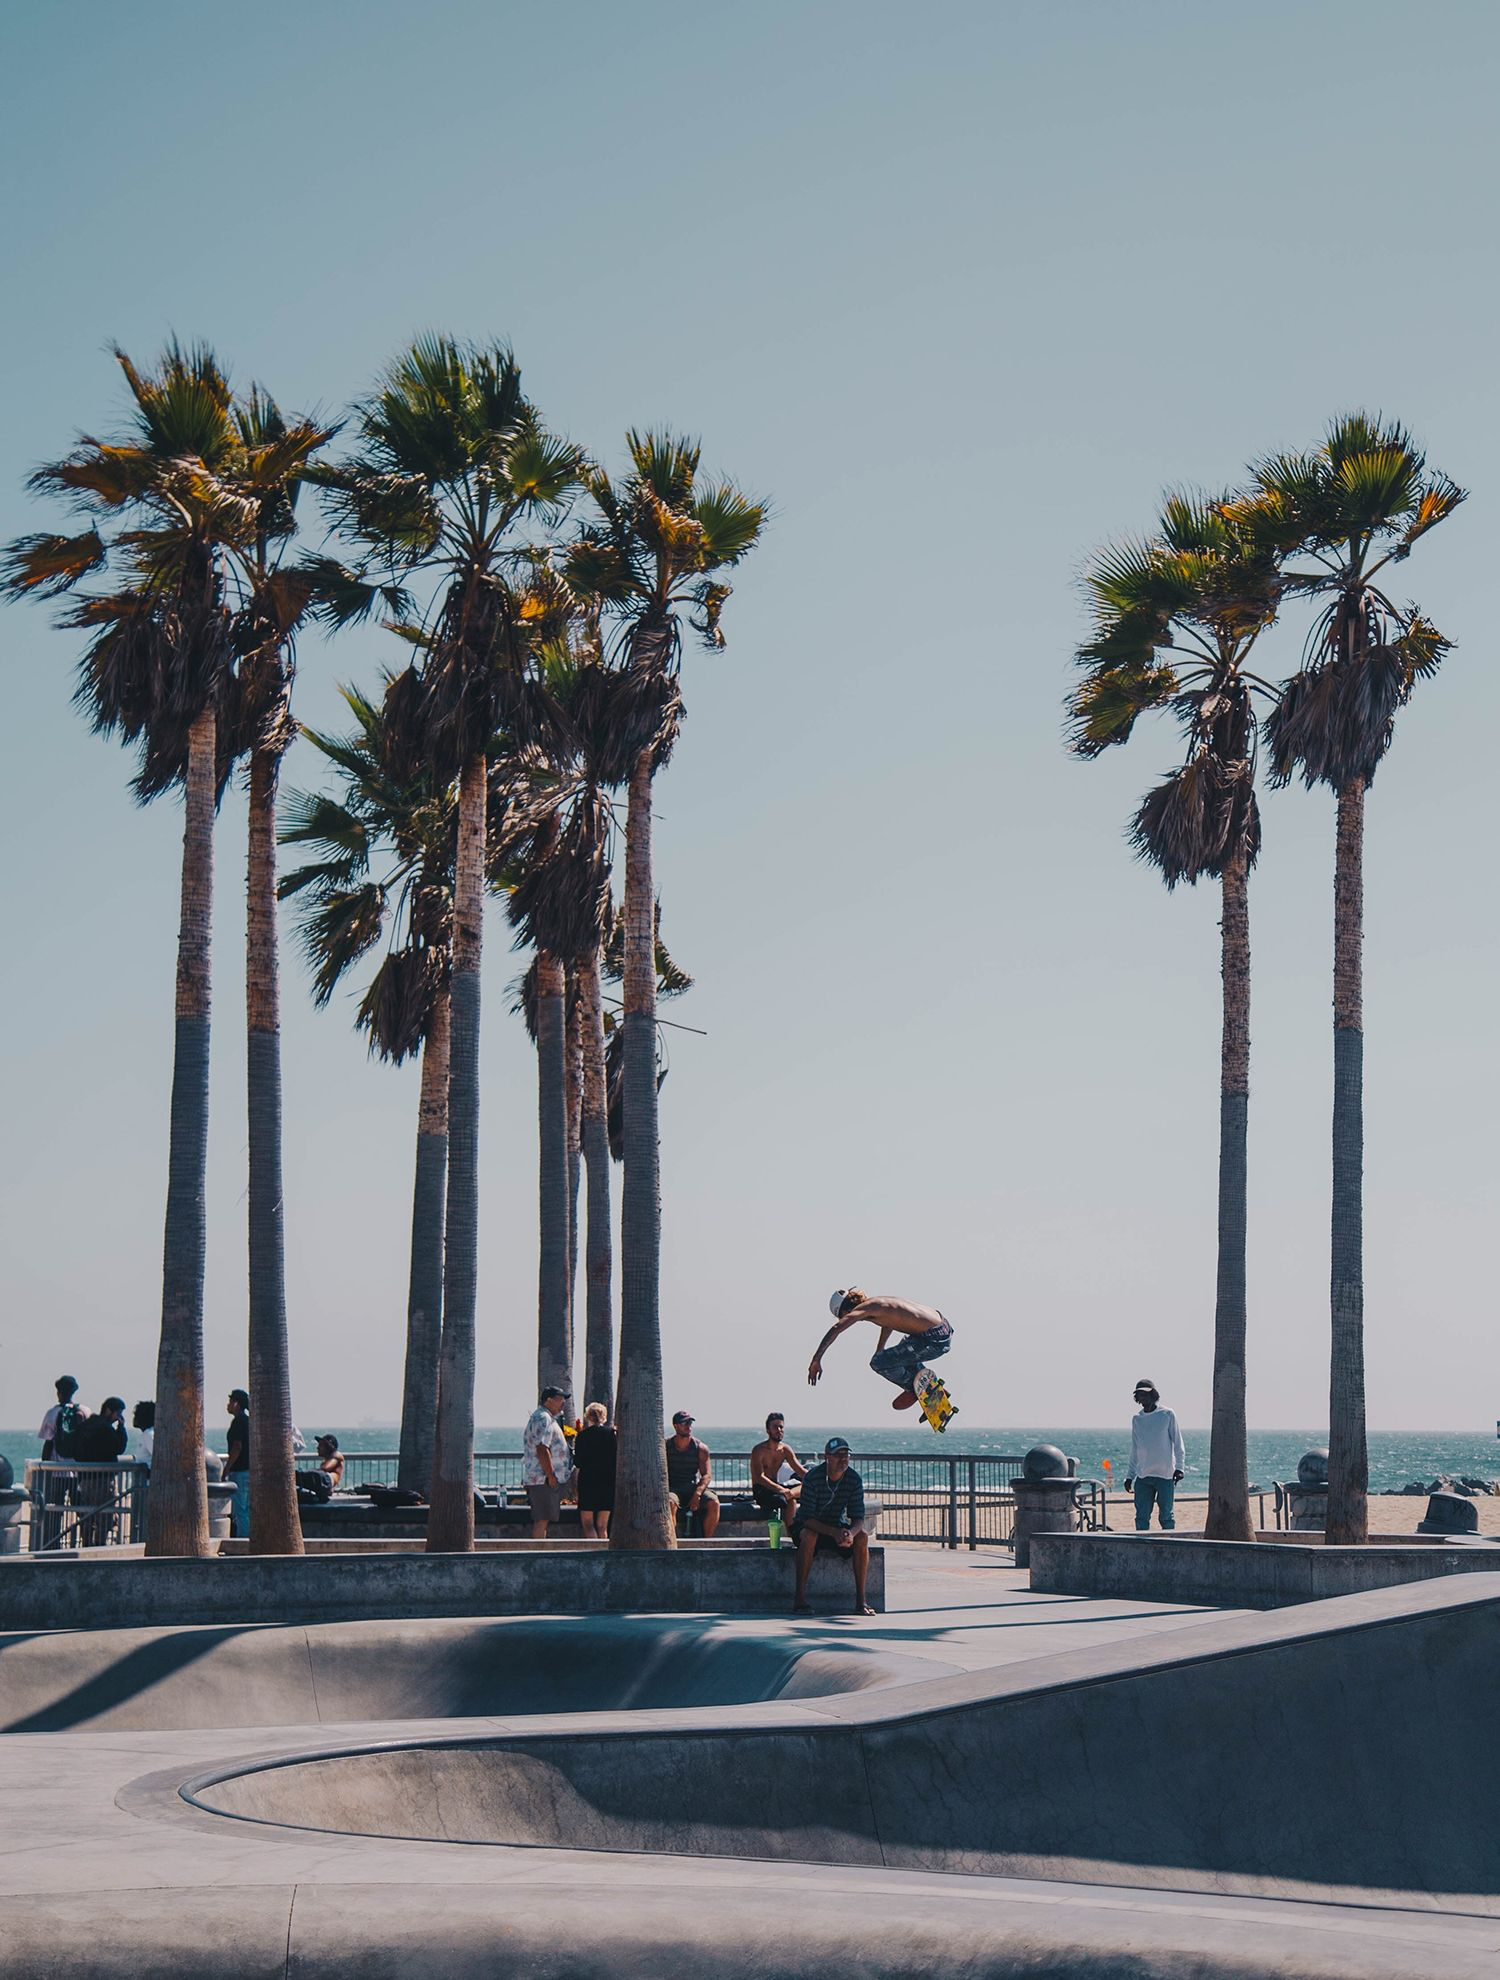 Venice, California 🇺🇸 Park pictures, Skate photos